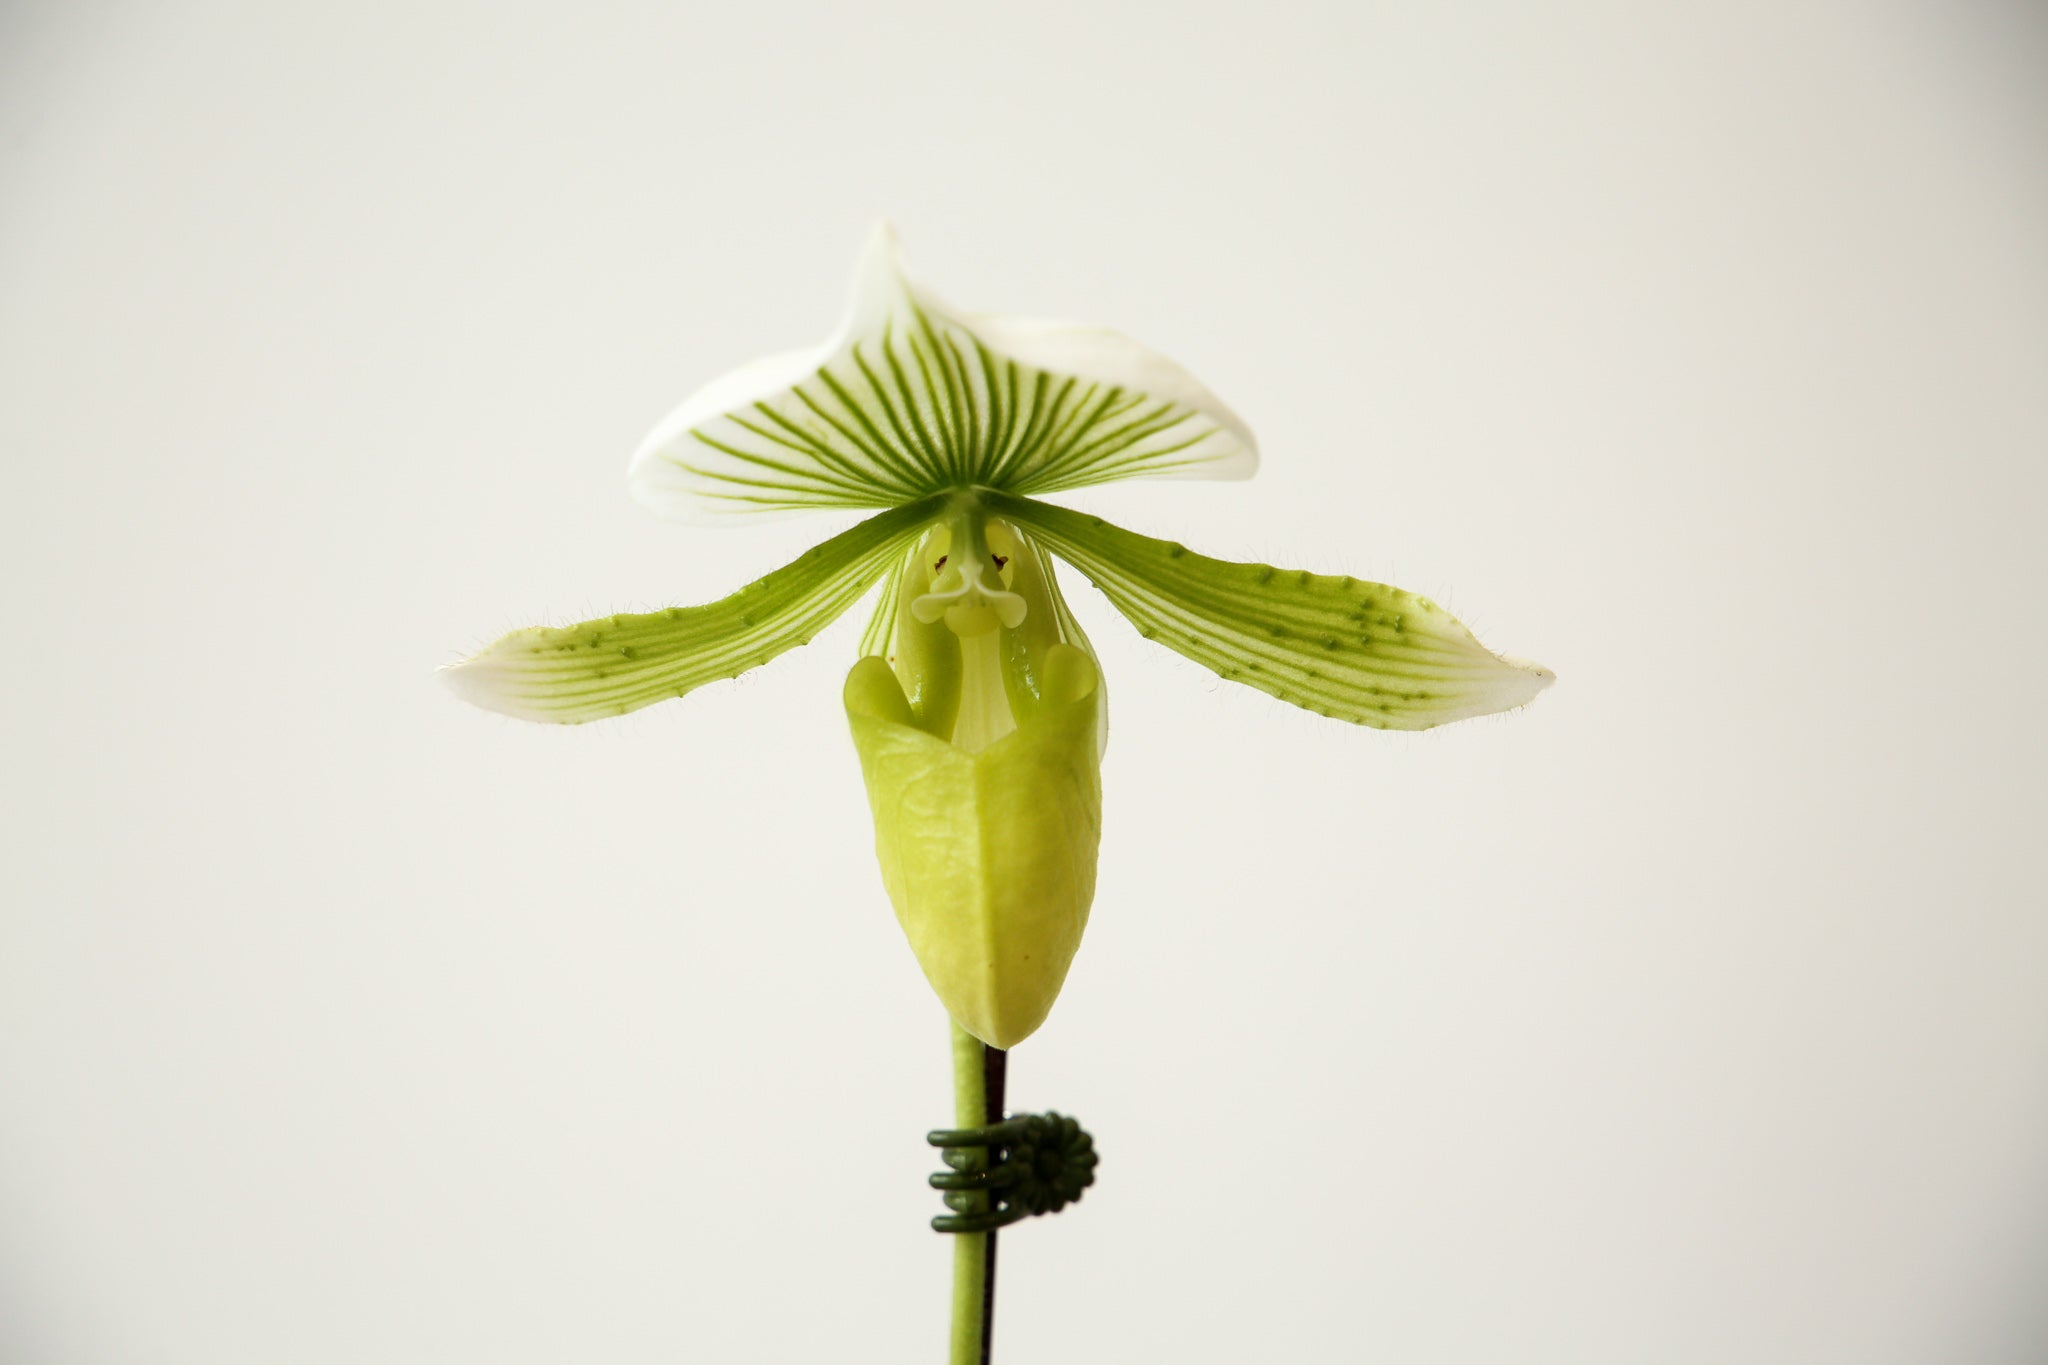 Paphiopedilum Hilo Green Mountain 'Lady Slipper Orchid'